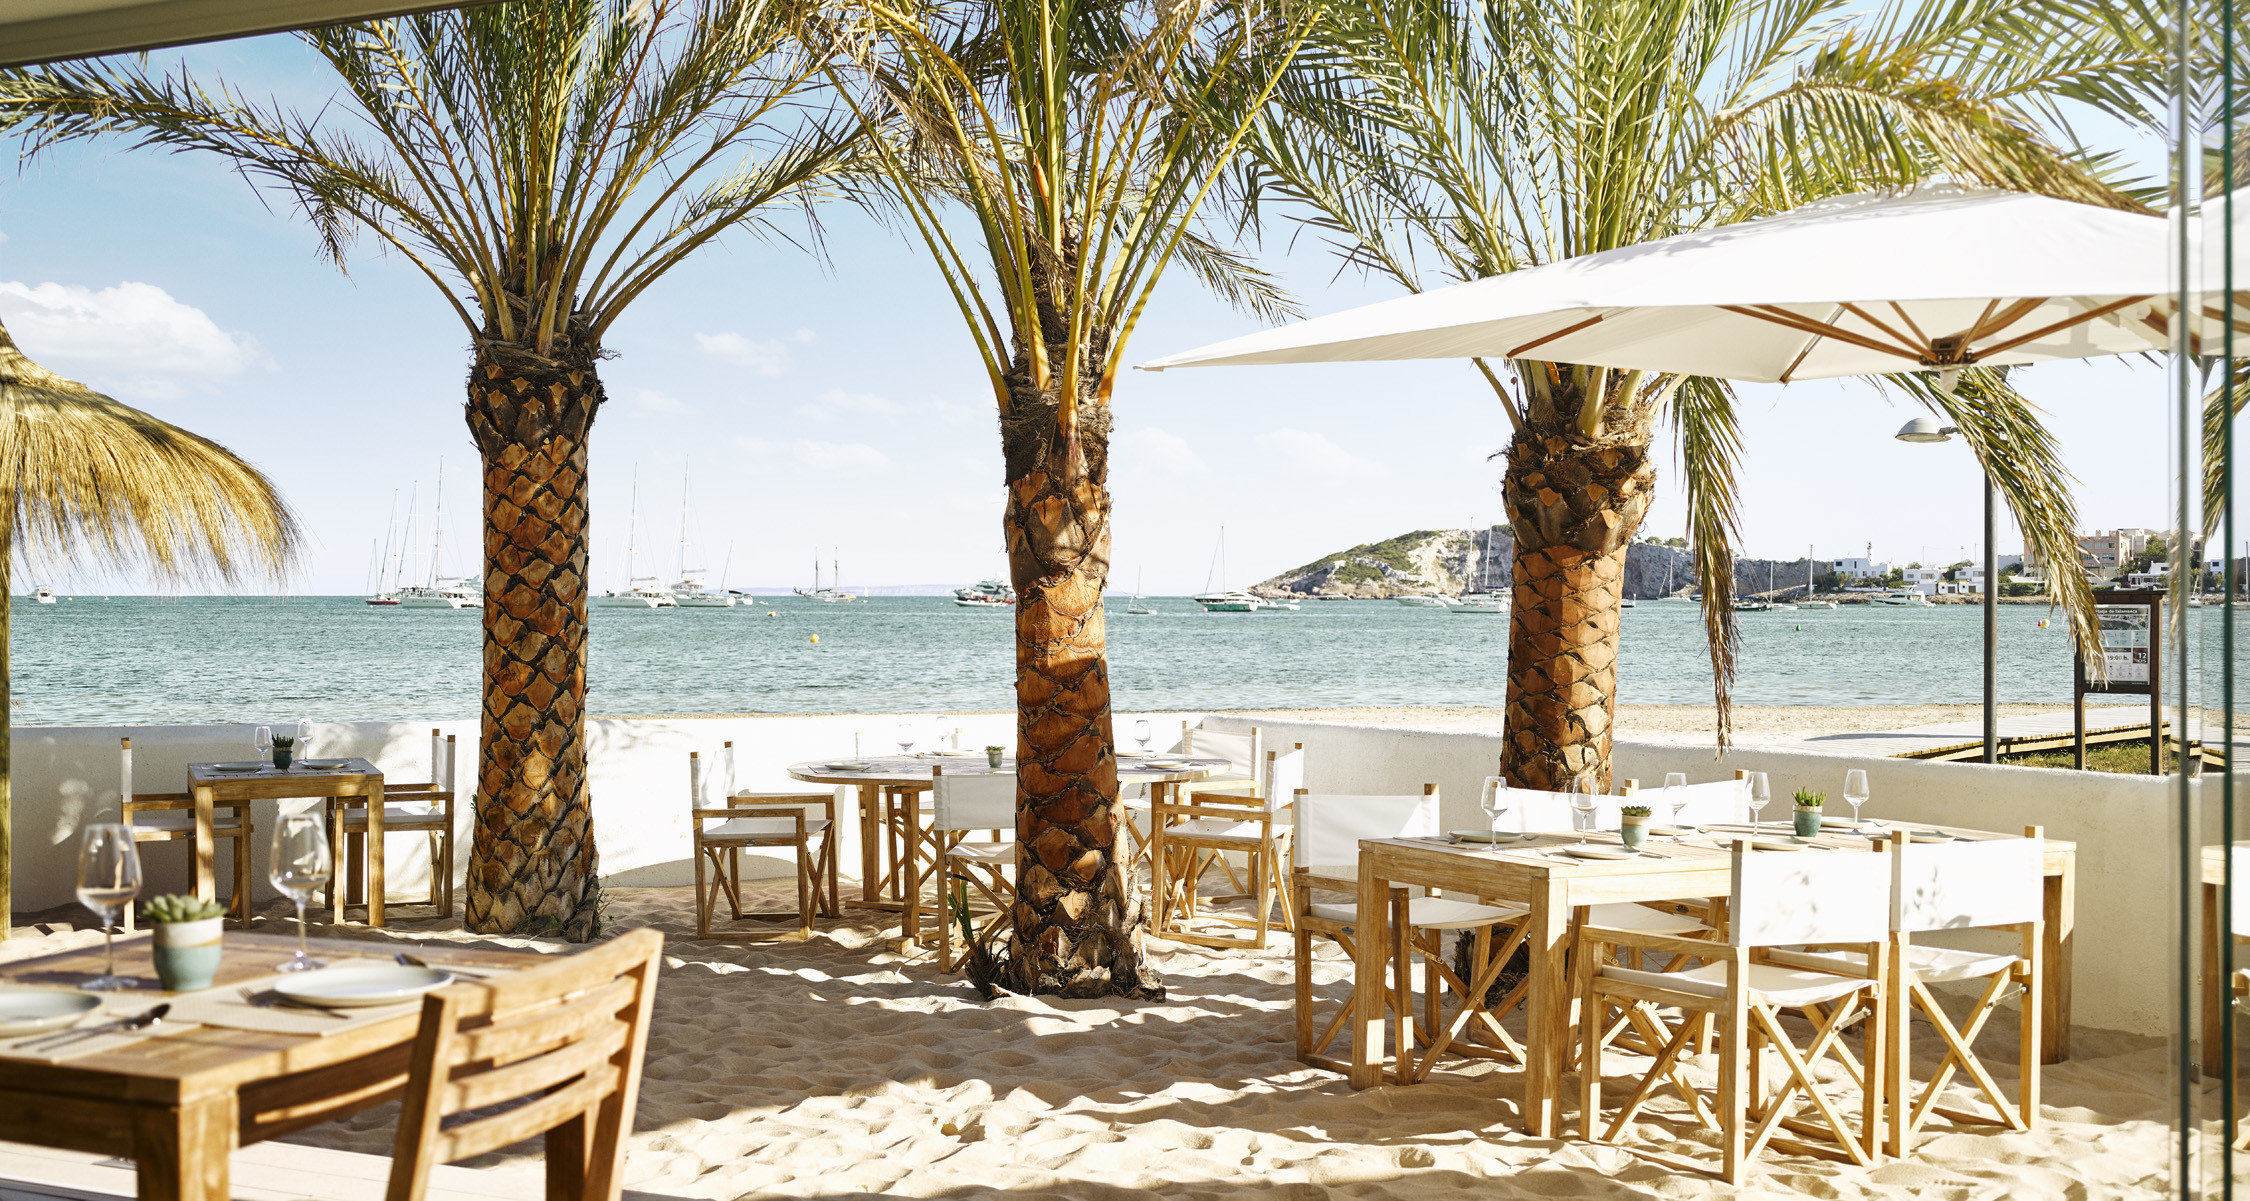 tree chair water Resort restaurant palm tree arecales Beach set dining table